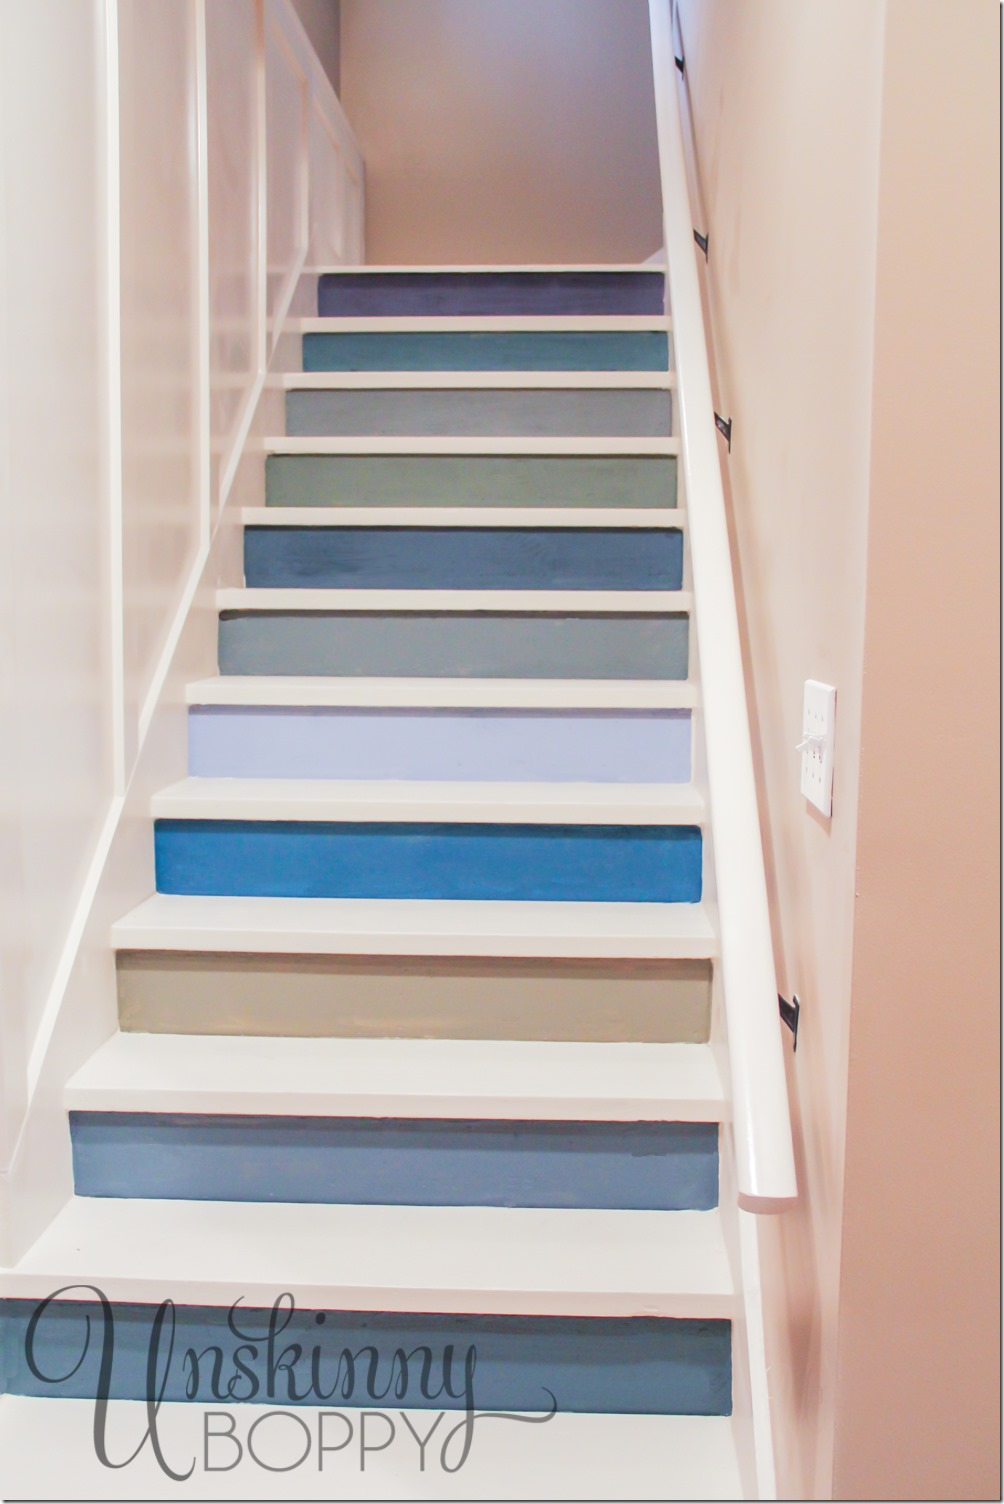 Here's the finished project - the colorful stairs look great from the bottom of the staircase!